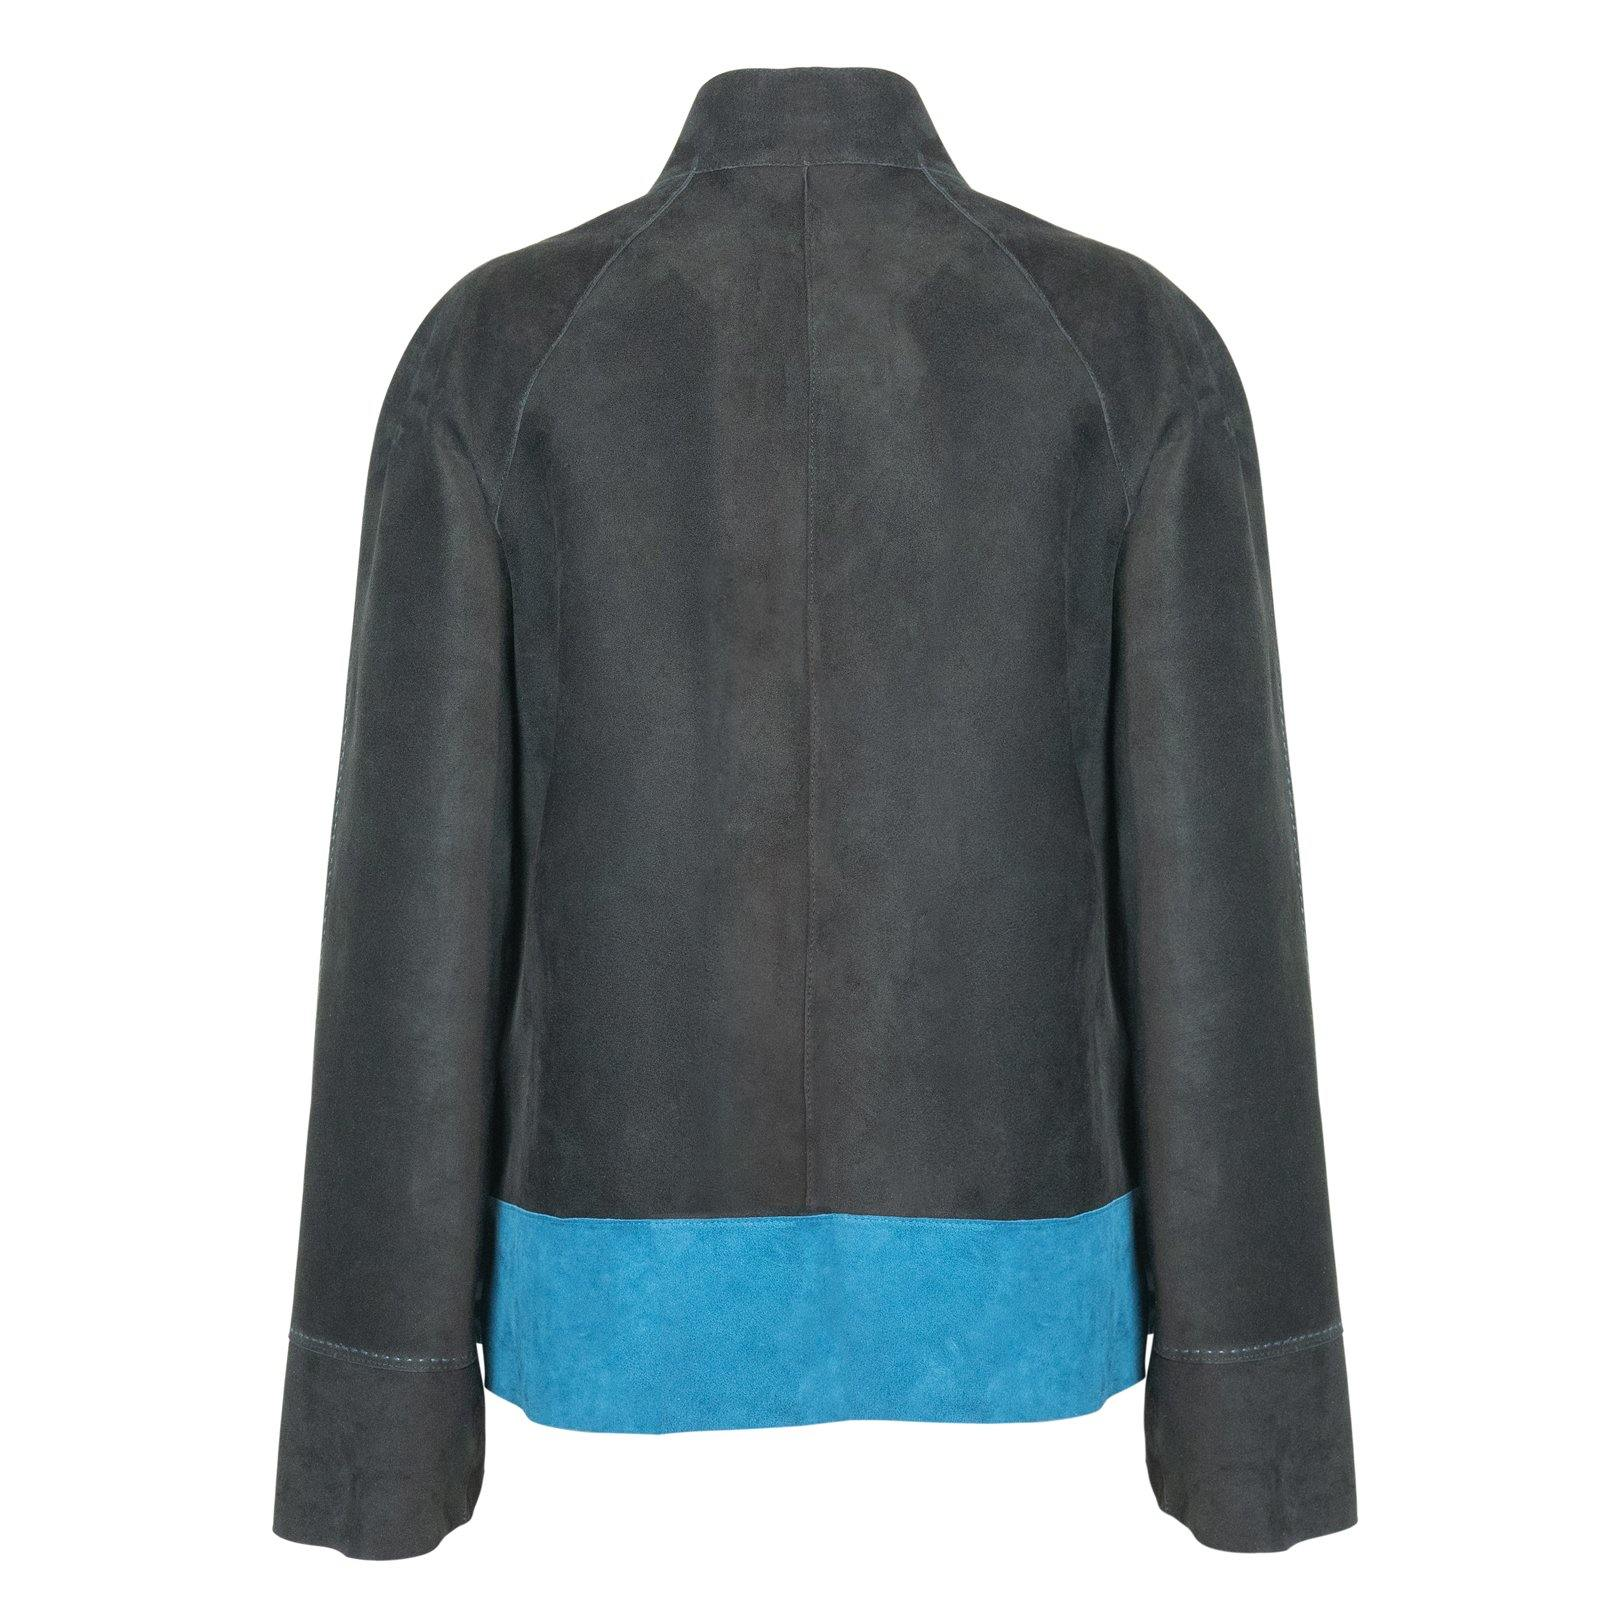 HEPBURN Reversible Leather Jacket in Black, Light Blue and Avio